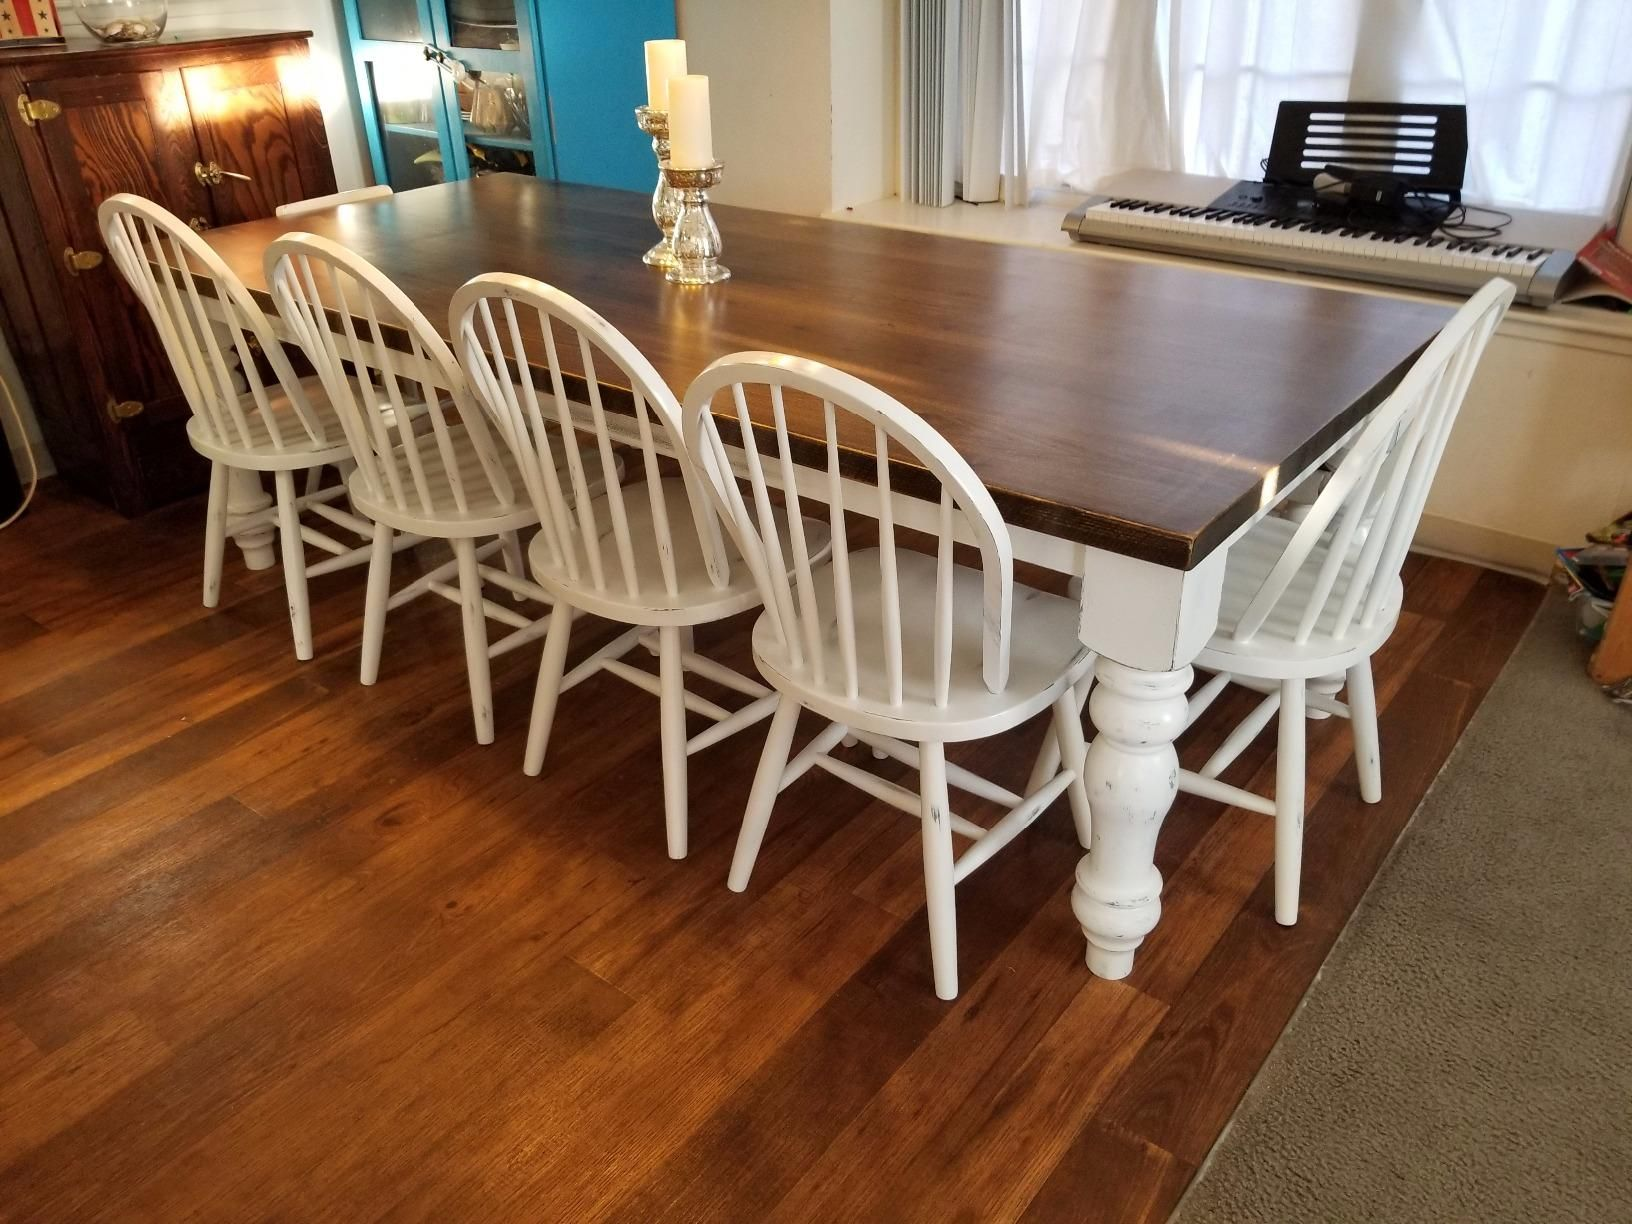 Chunky Unfinished Farmhouse Dining Table Legs Set Of 4 Turned Design 59 Inc Handmade